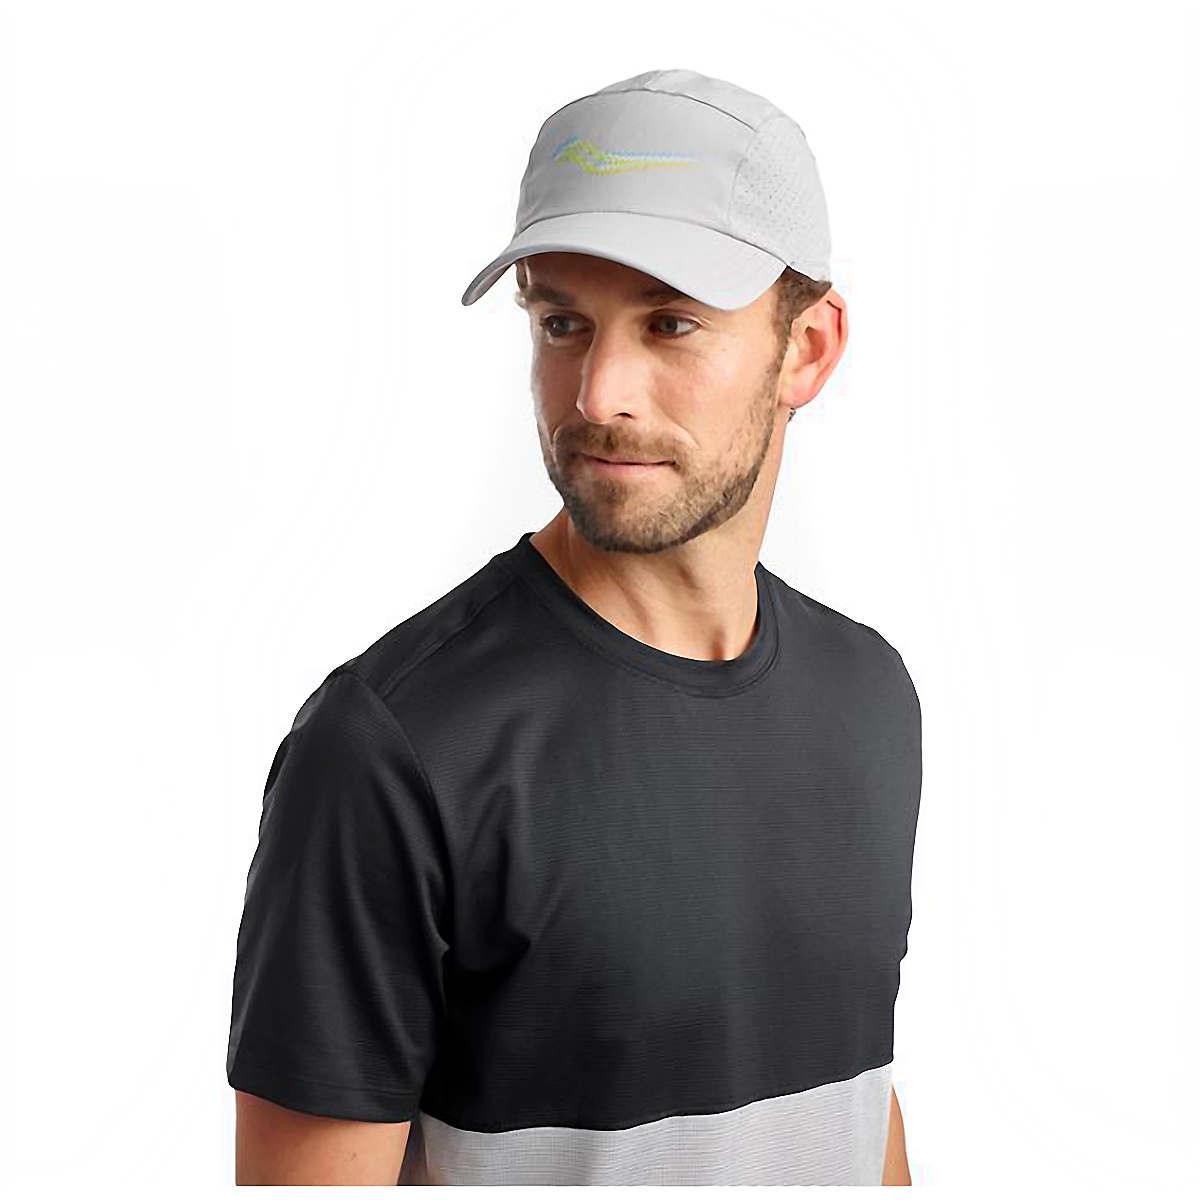 Saucony Outpace Hat - Color: Alloy, Alloy, large, image 3